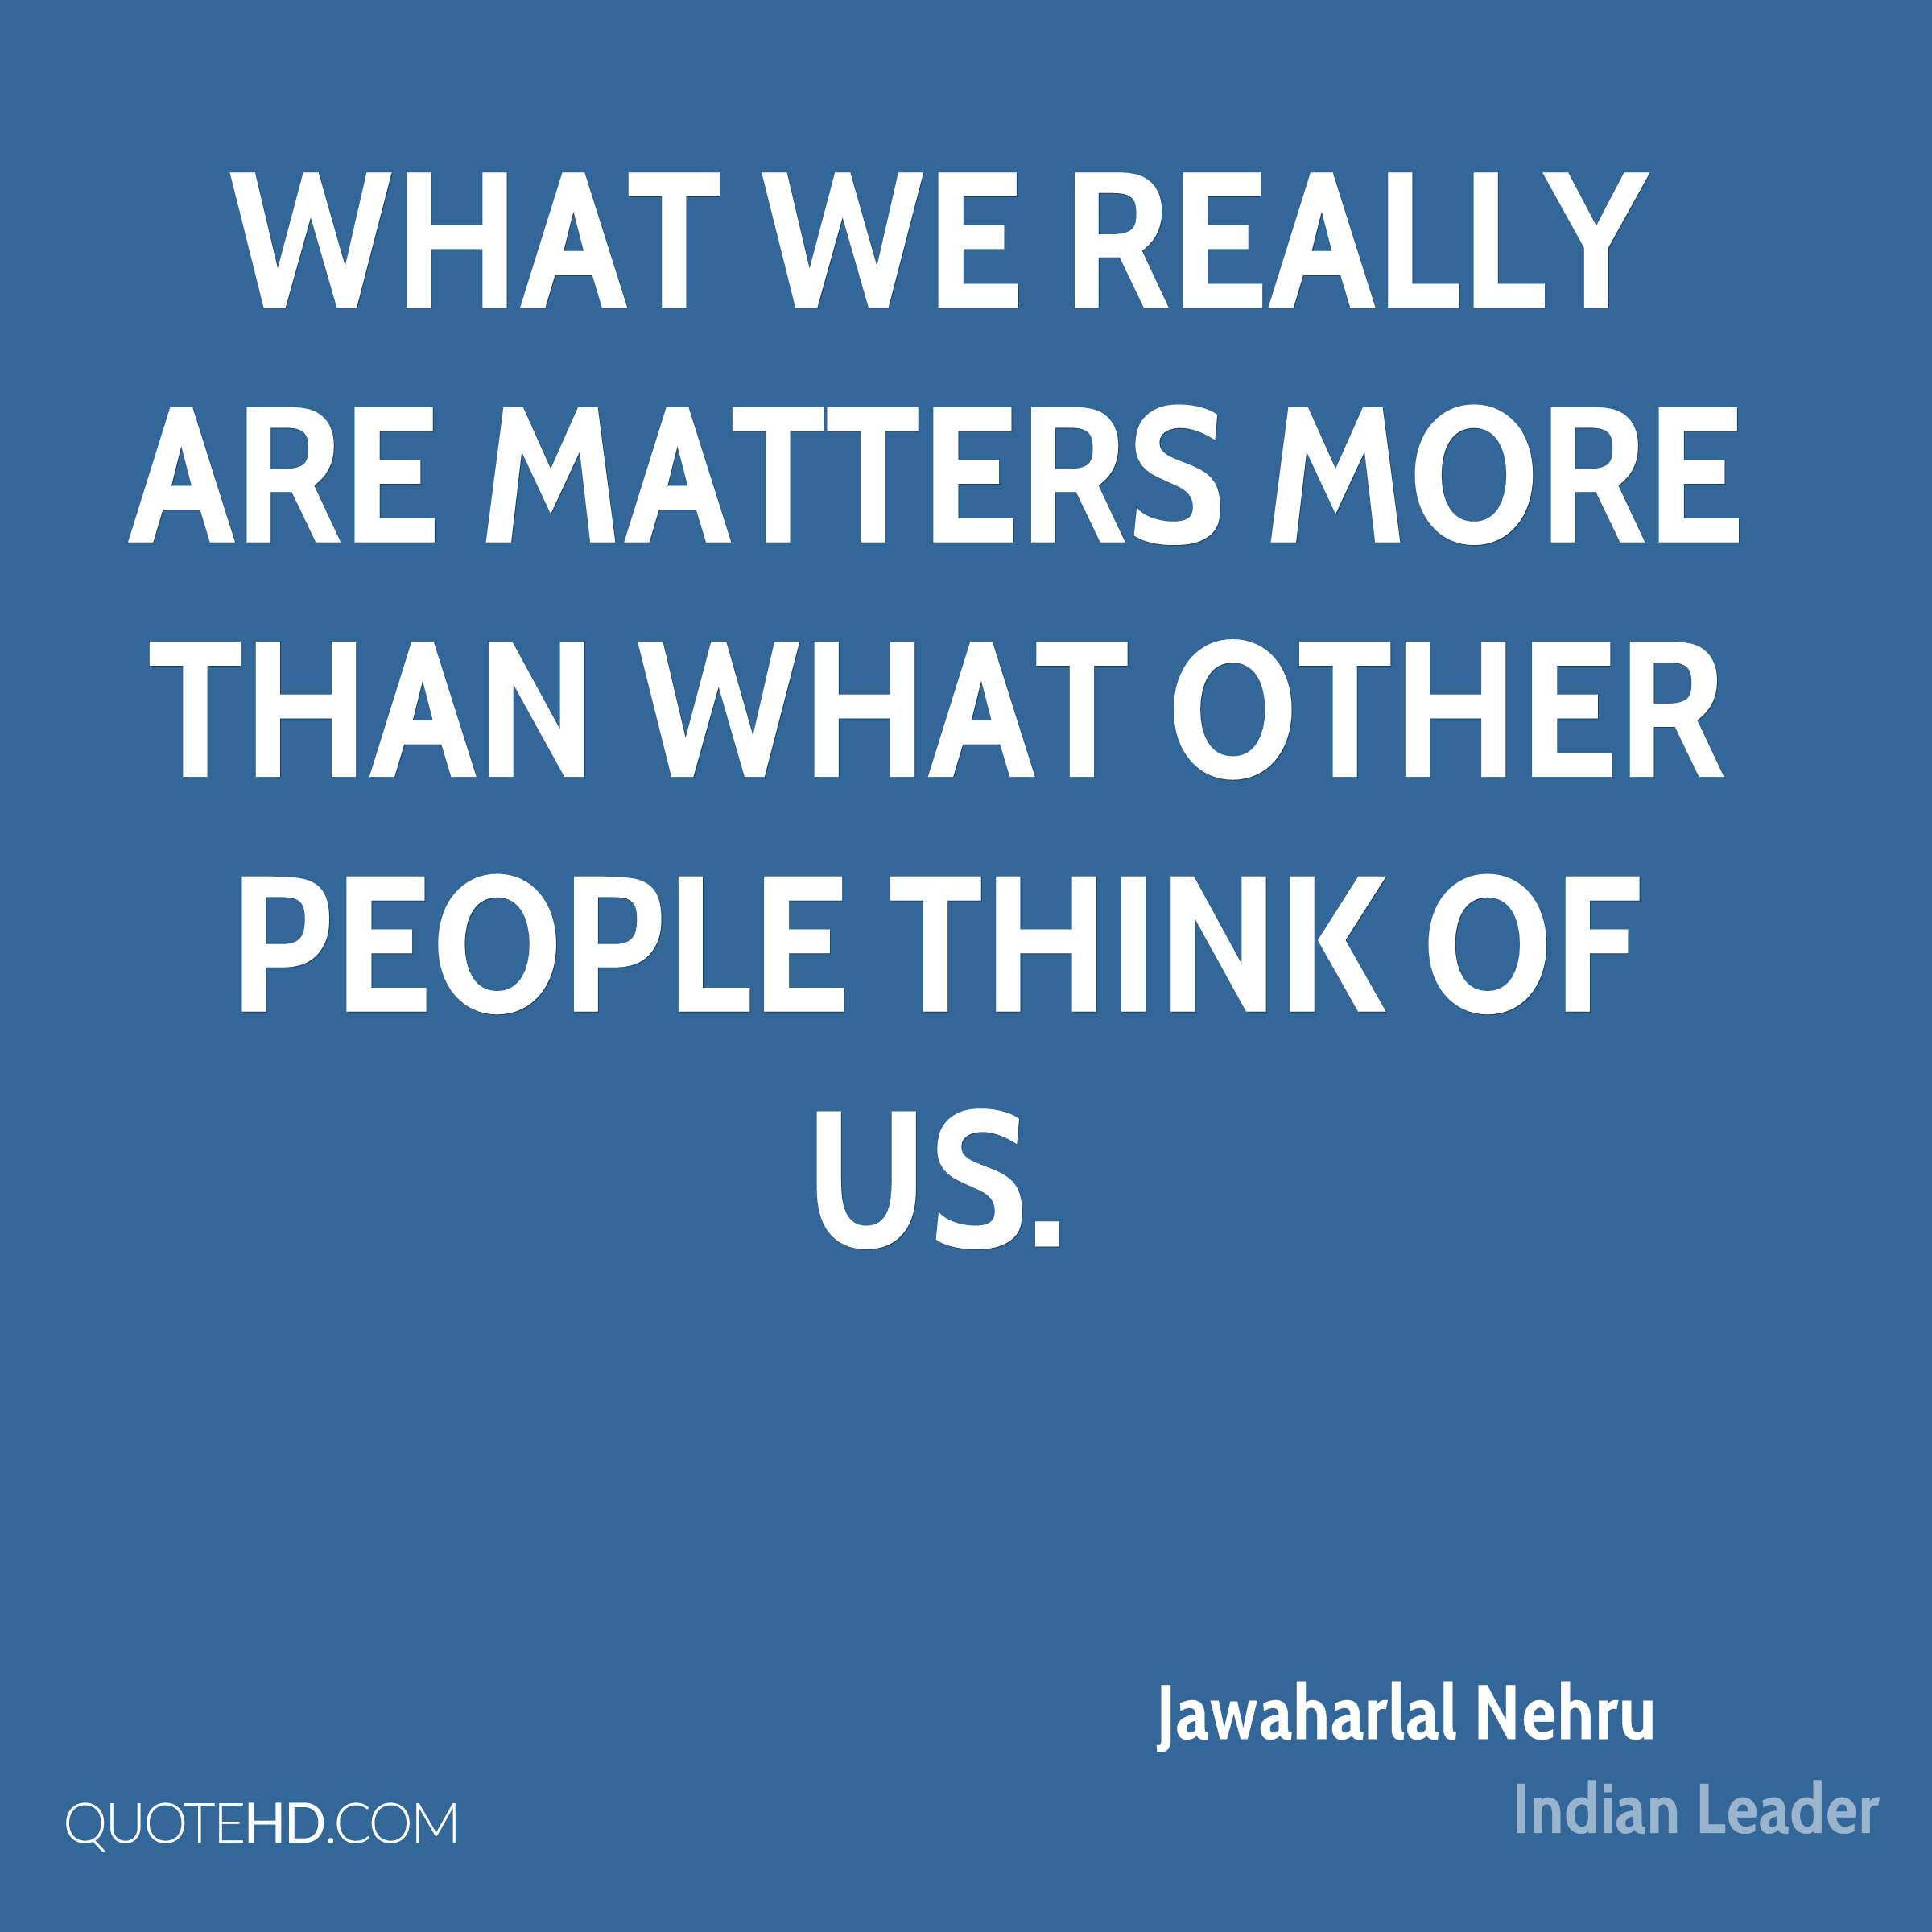 What we really are matters more than what other people think of us.